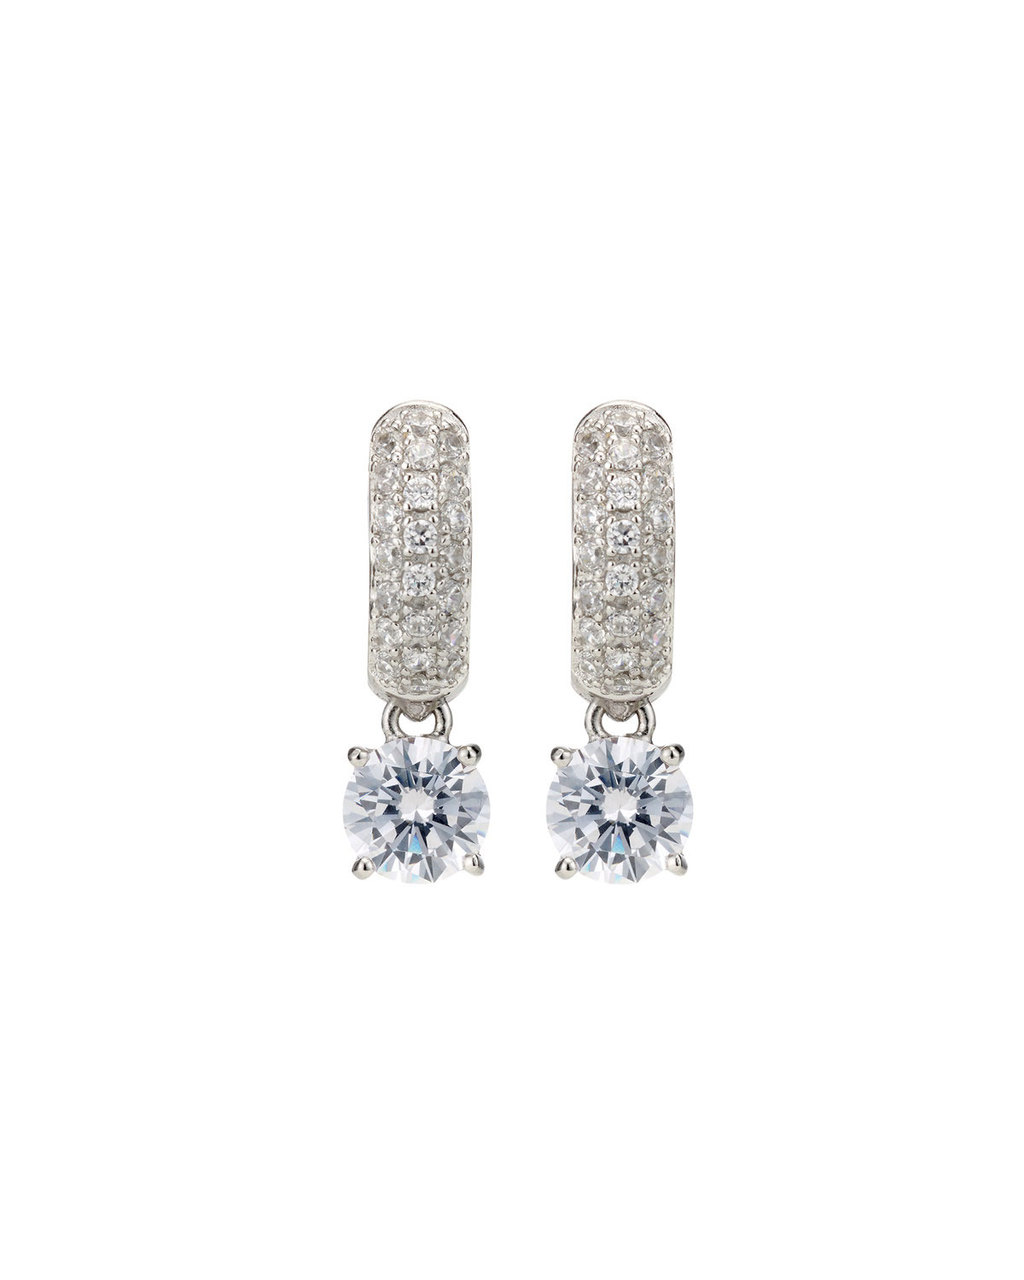 Cubic Zirconia Pave Drop Earrings - predominant colour: silver; occasions: evening, occasion; style: drop; length: mid; size: standard; material: chain/metal; fastening: pierced; finish: metallic; embellishment: crystals/glass; season: s/s 2016; wardrobe: event